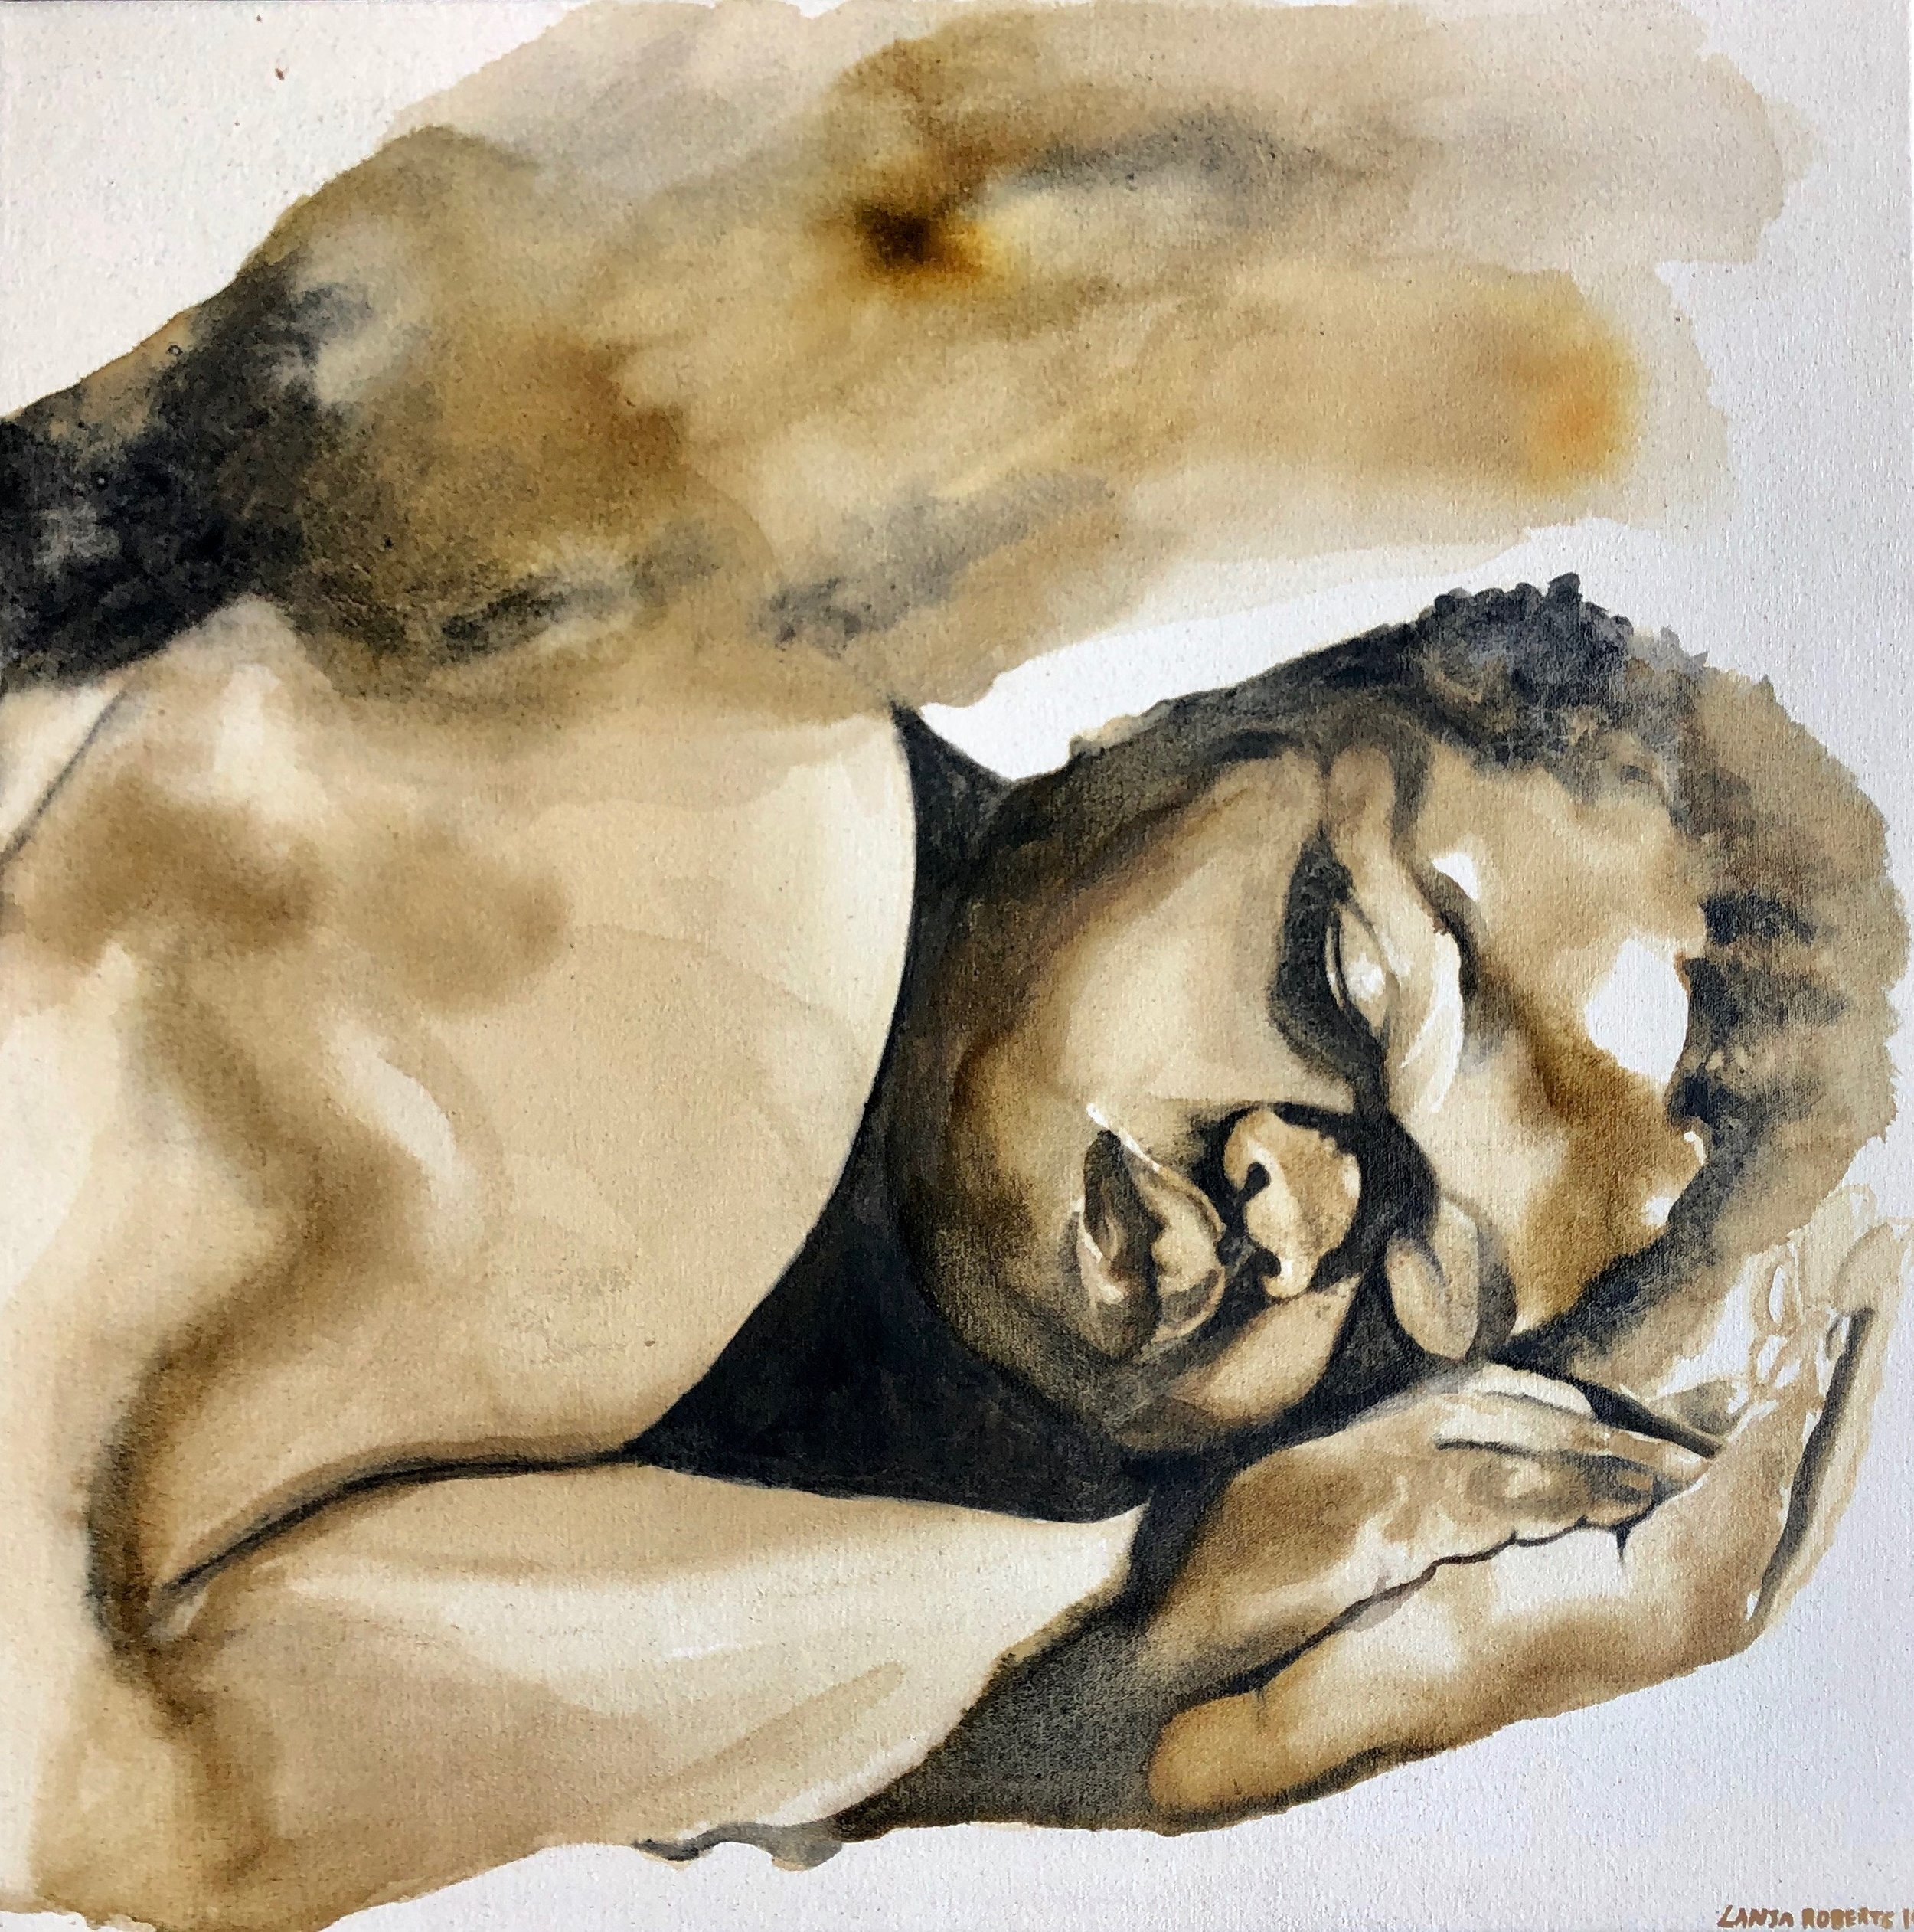 """Still"" by LaNia Roberts, Honey, ink, & charcoal, 24x24in, $900, Available for purchase through Silent Auction at the 2019 Art[squared] Preview Party Fundrasier"